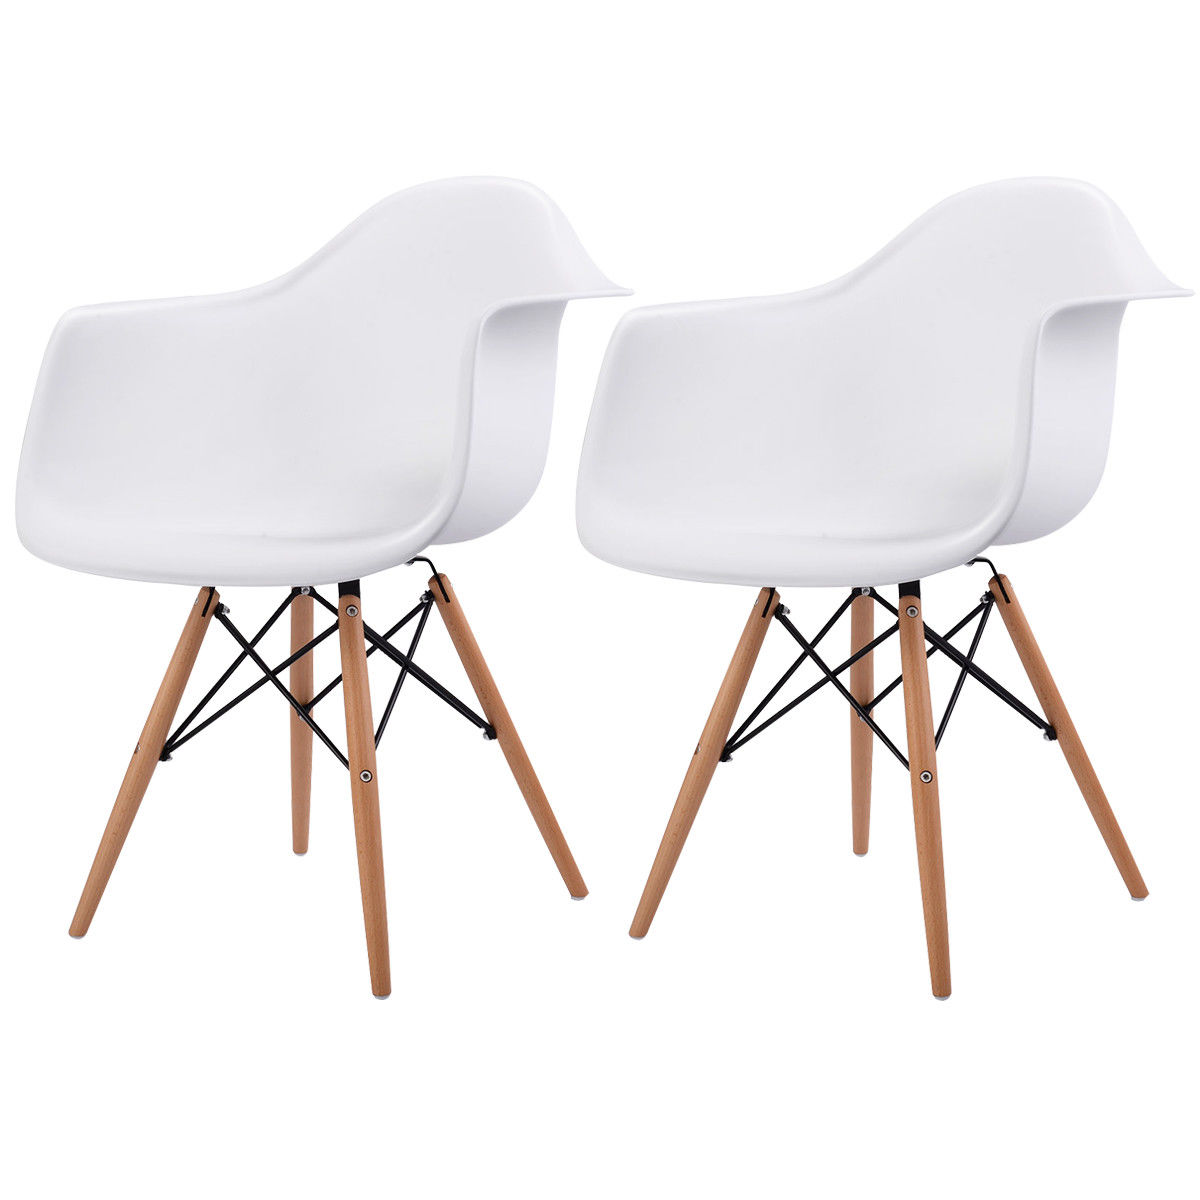 Costway Set of 2 Mid Century Modern Molded Style Dining Arm Chair Wood Legs